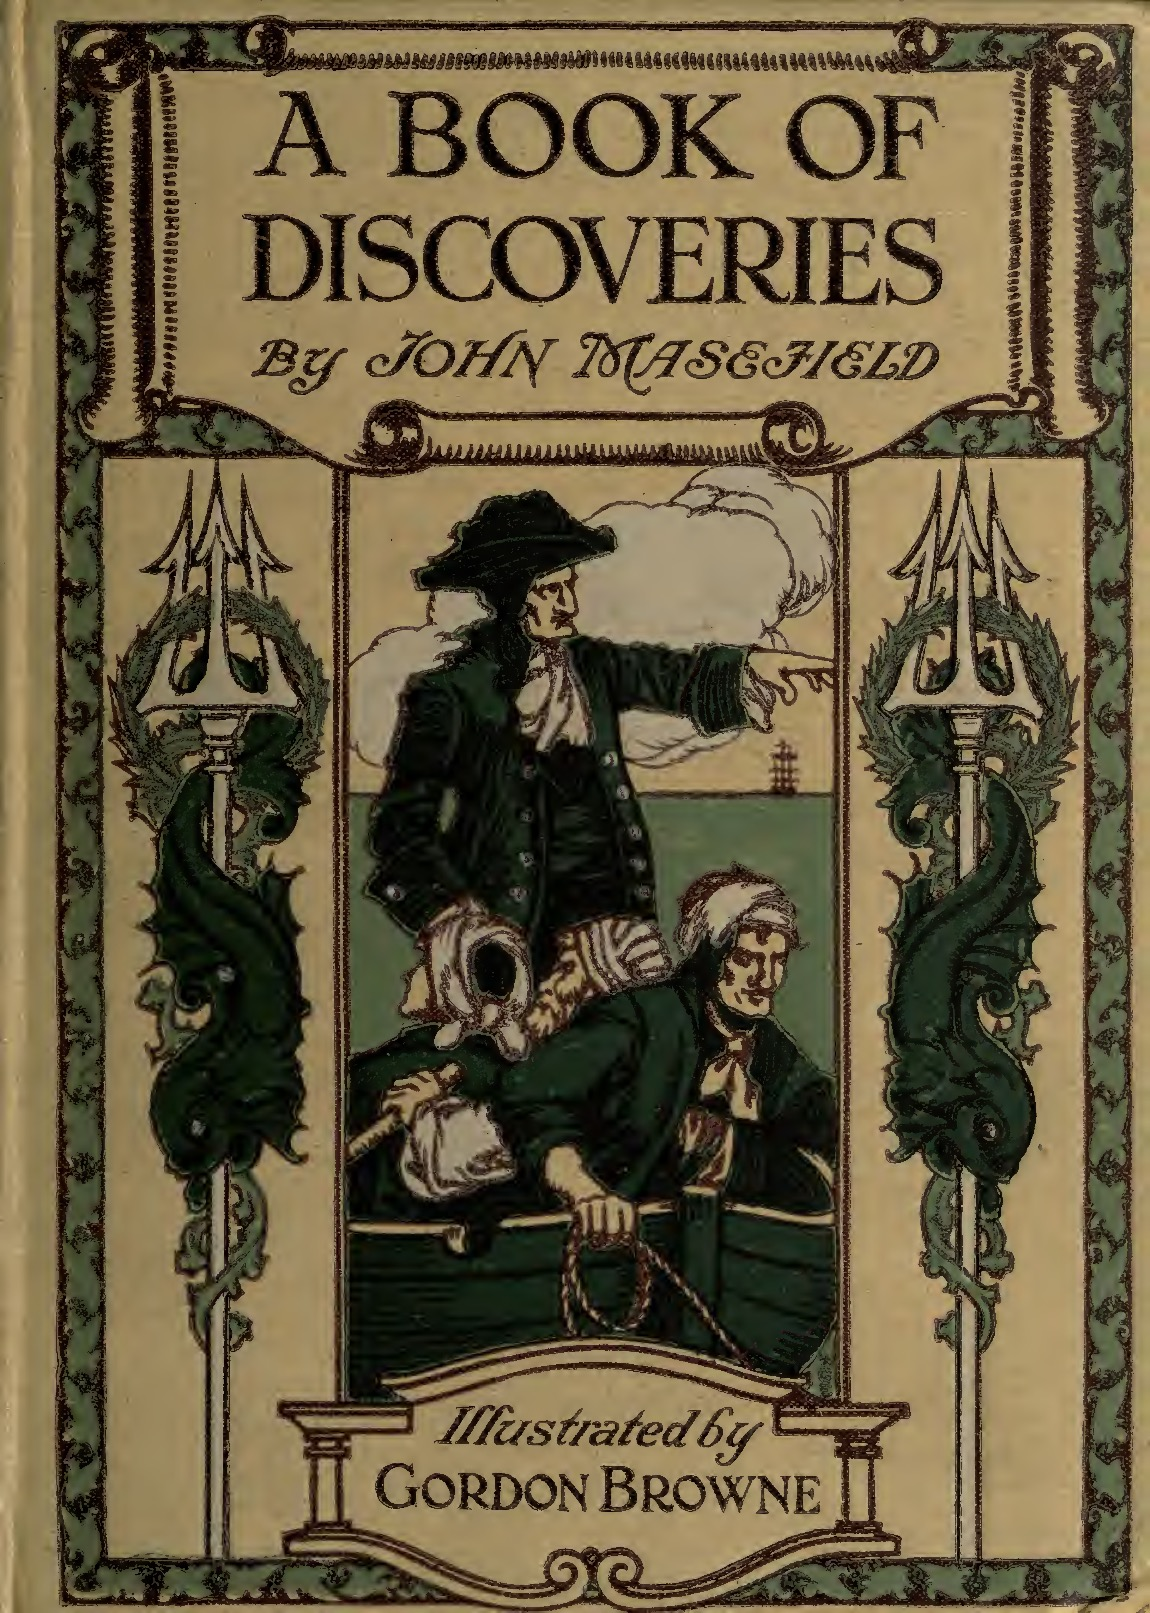 a_book_of_discoveries_by_john_masefield_in_1910_image-001.jpeg